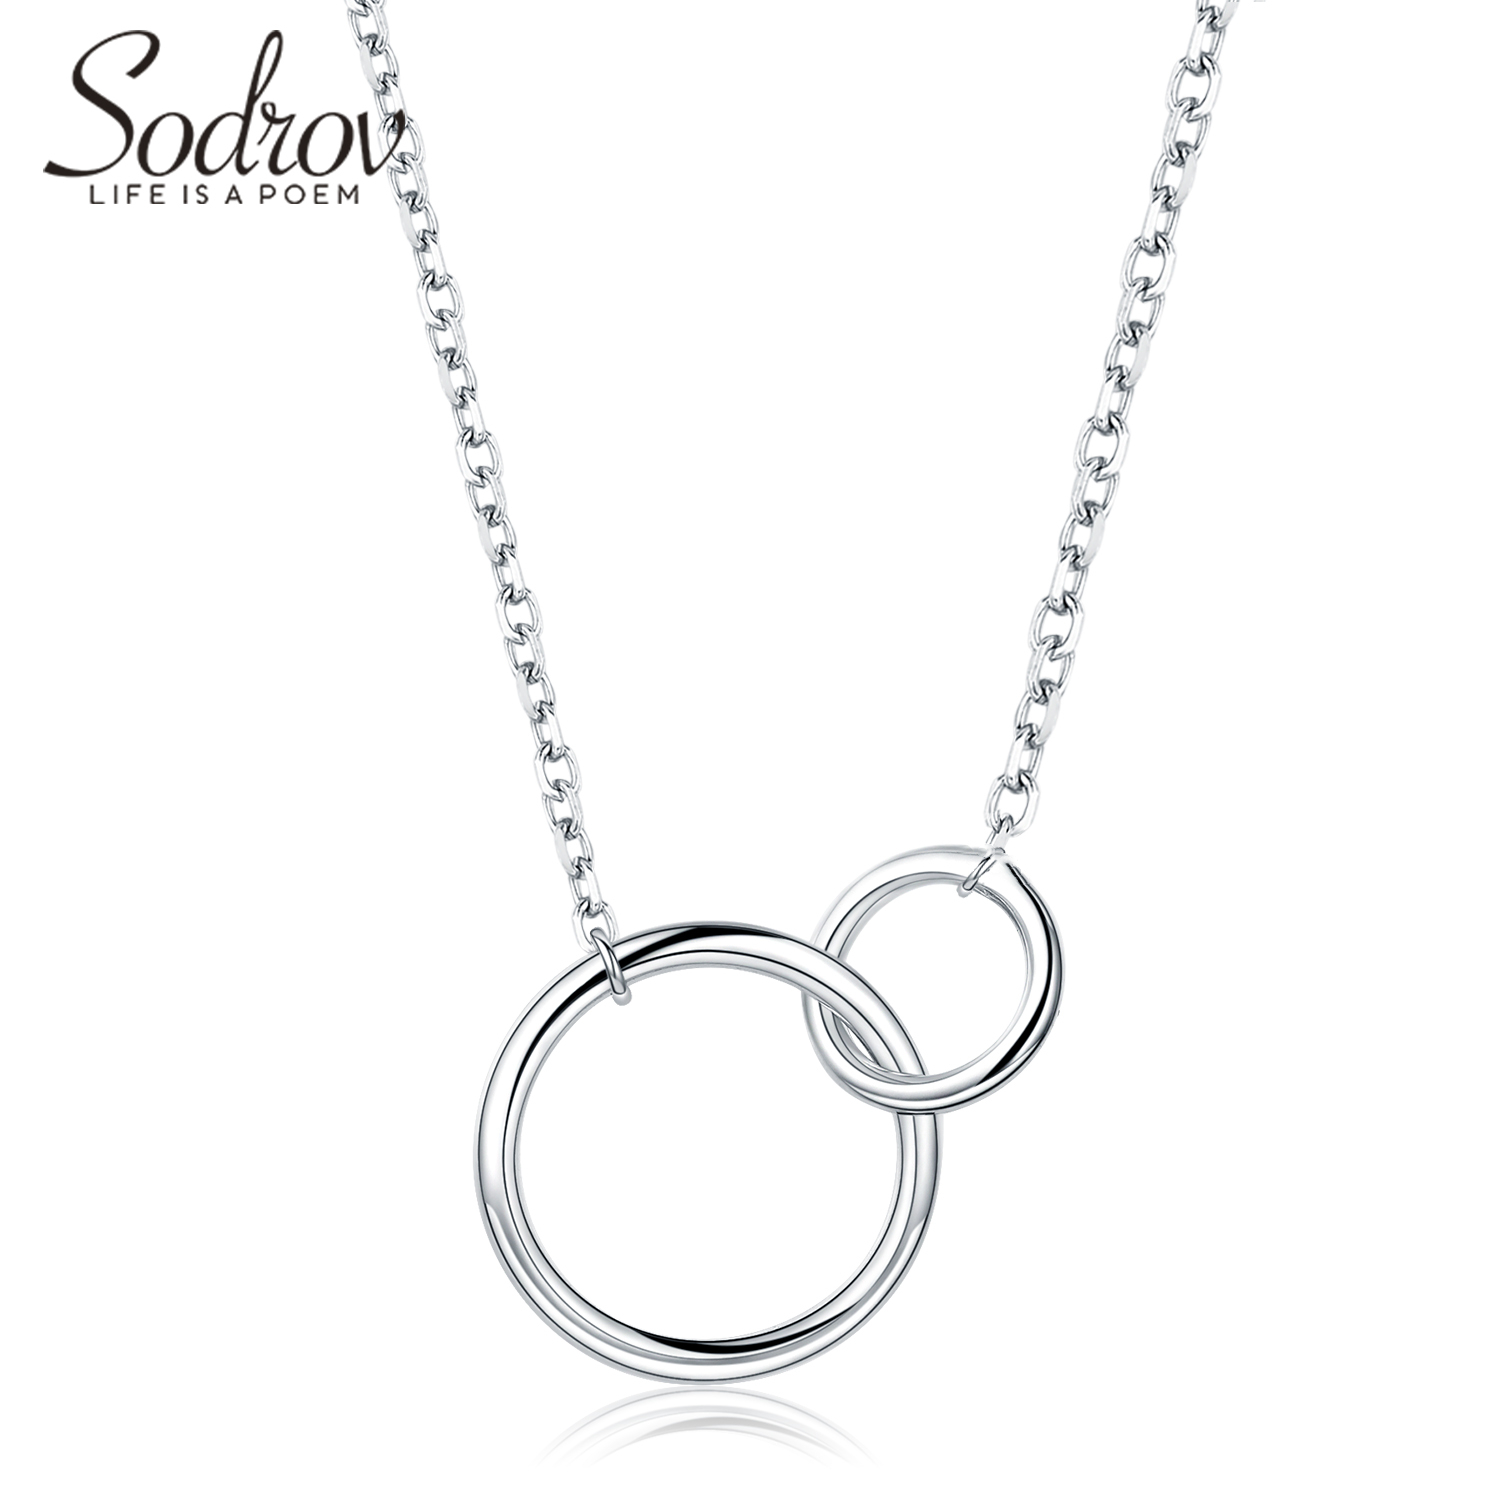 Sodrov Necklace Chain Jewelry Sterling Silver Elegant Fashion Ladies Link Women Round Fine Party(China)